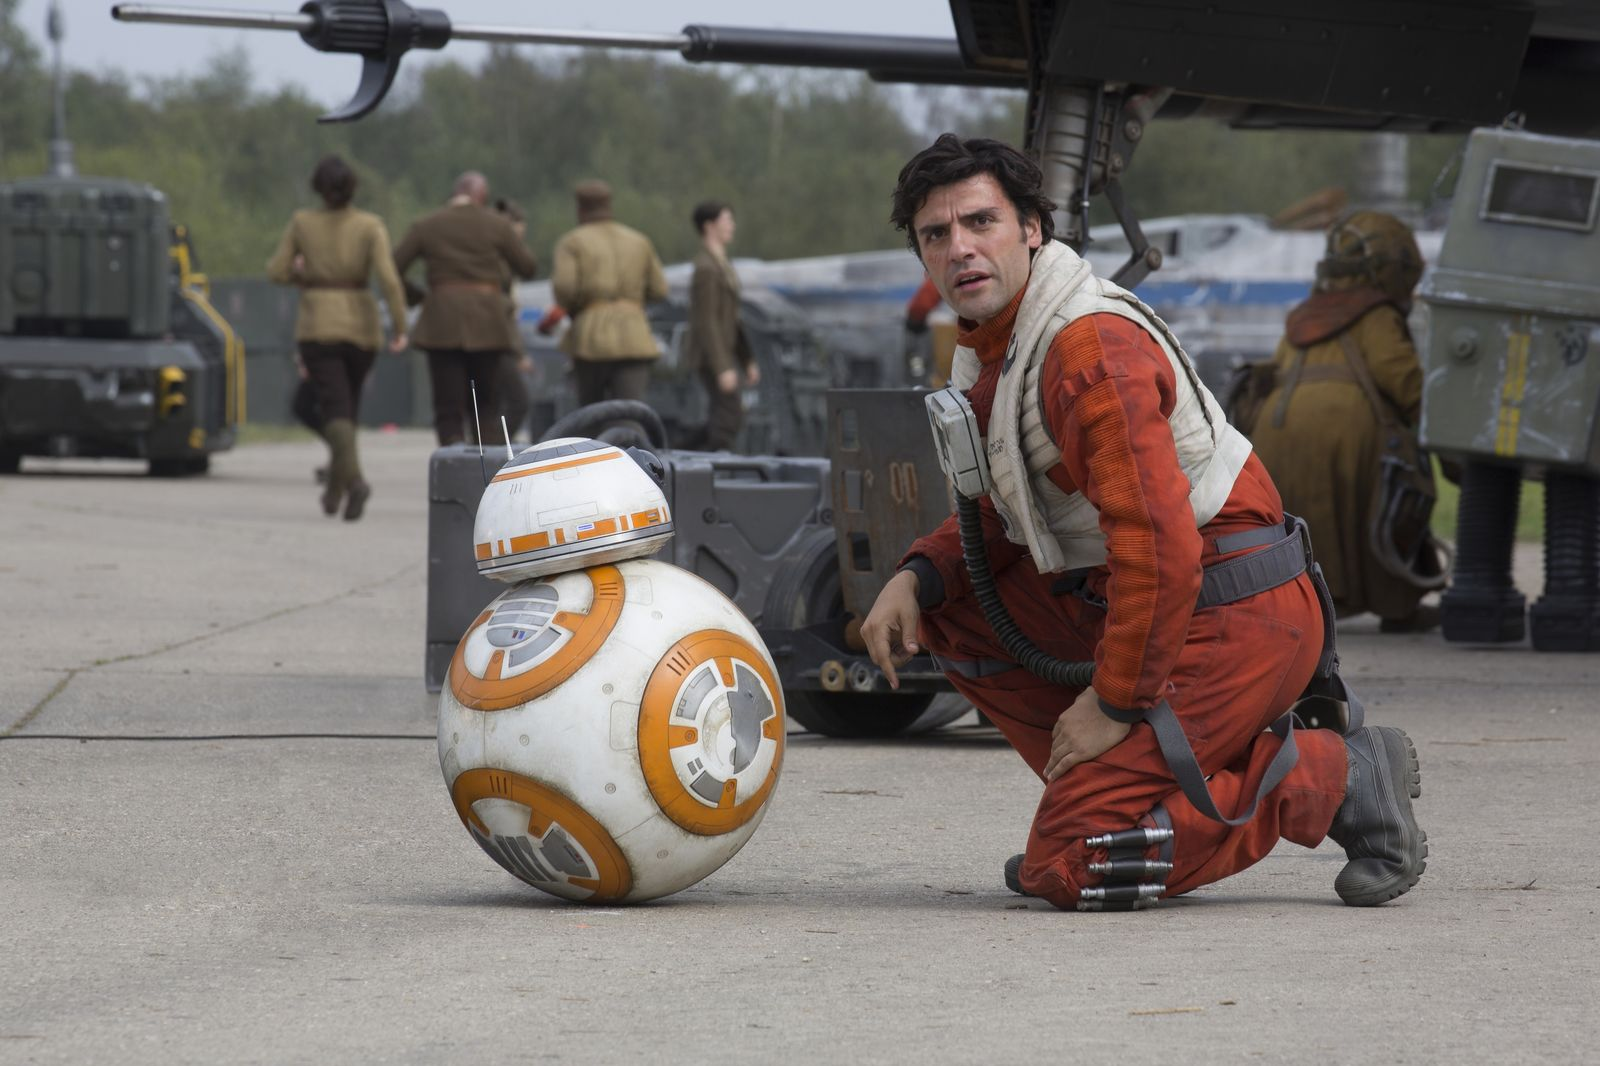 Poe Dameron (Oscar Isaac) is an ace pilot in the Resistance.